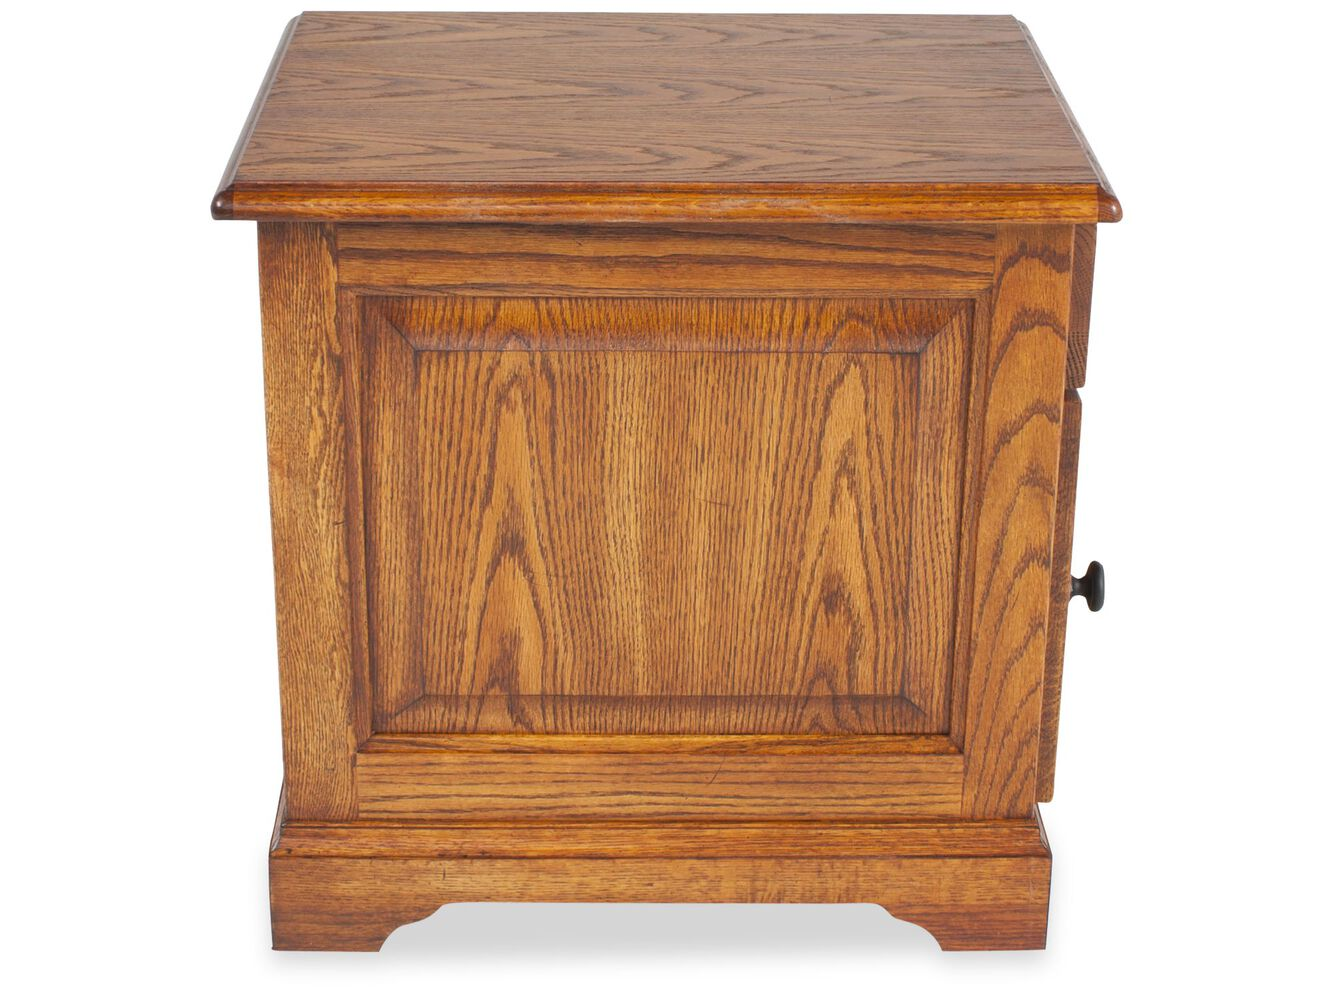 Square Country End Table In Golden Oak